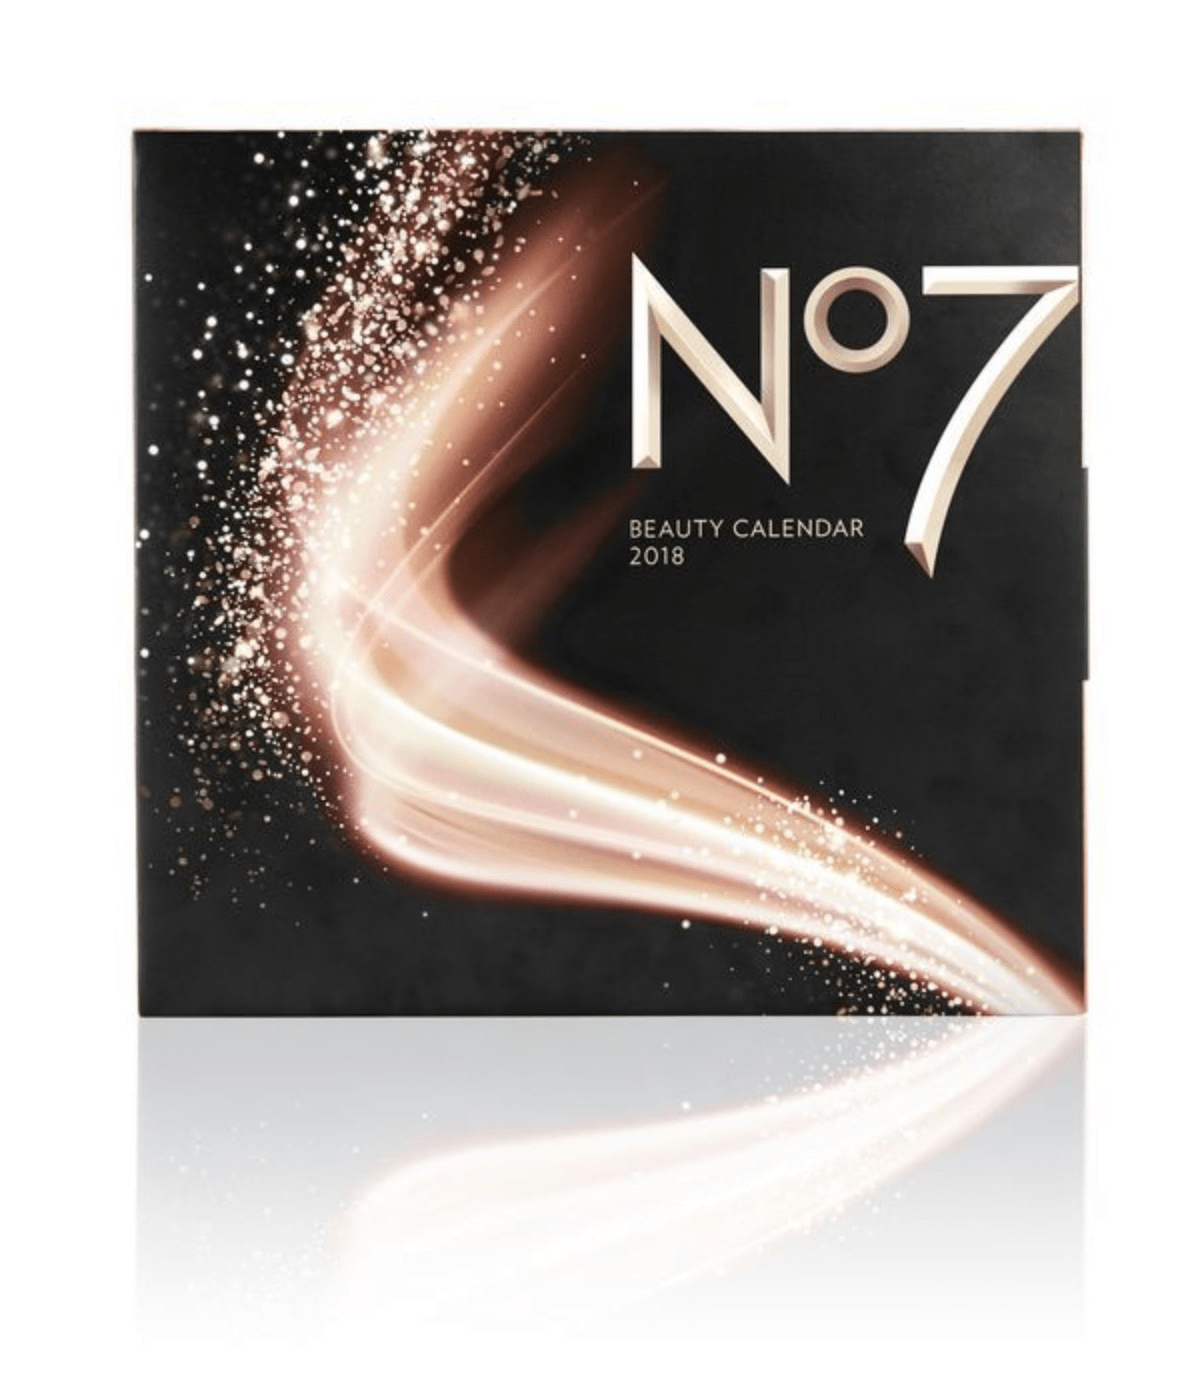 Boots No7 Advent Calendar 2018 Coming Soon!